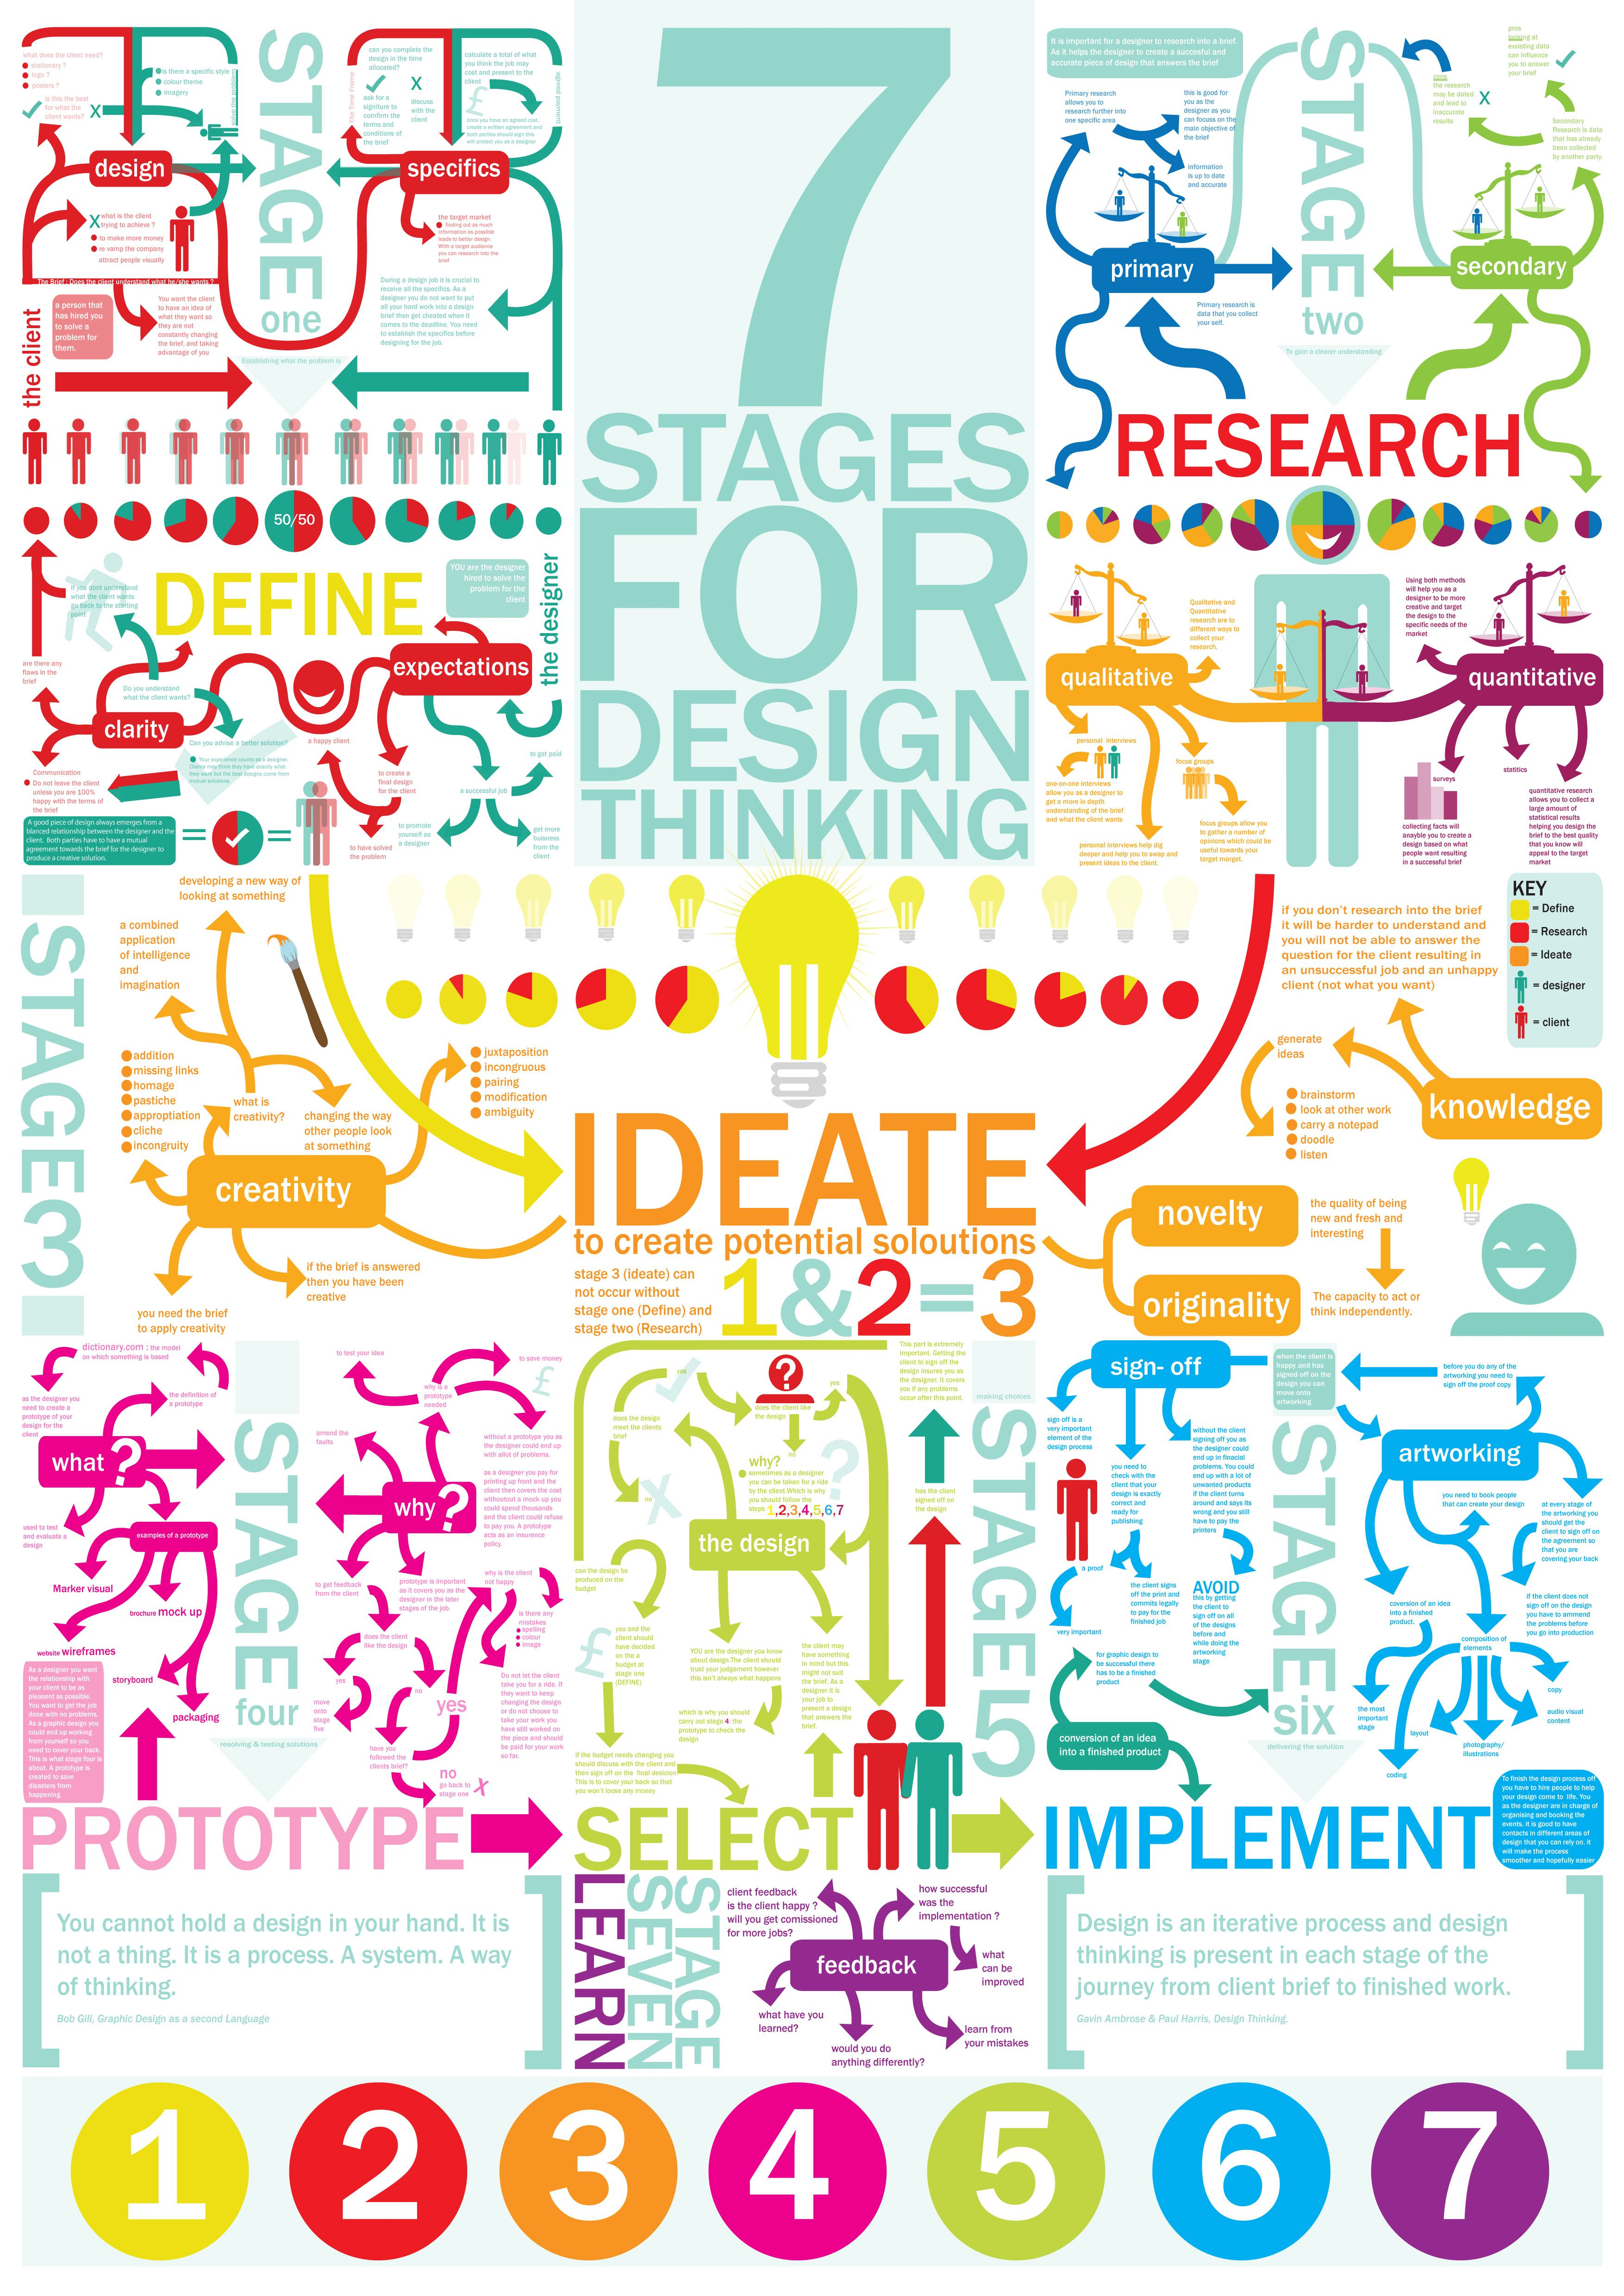 stages of design thinking define research ideate prototype select implement also for pinterest stage rh